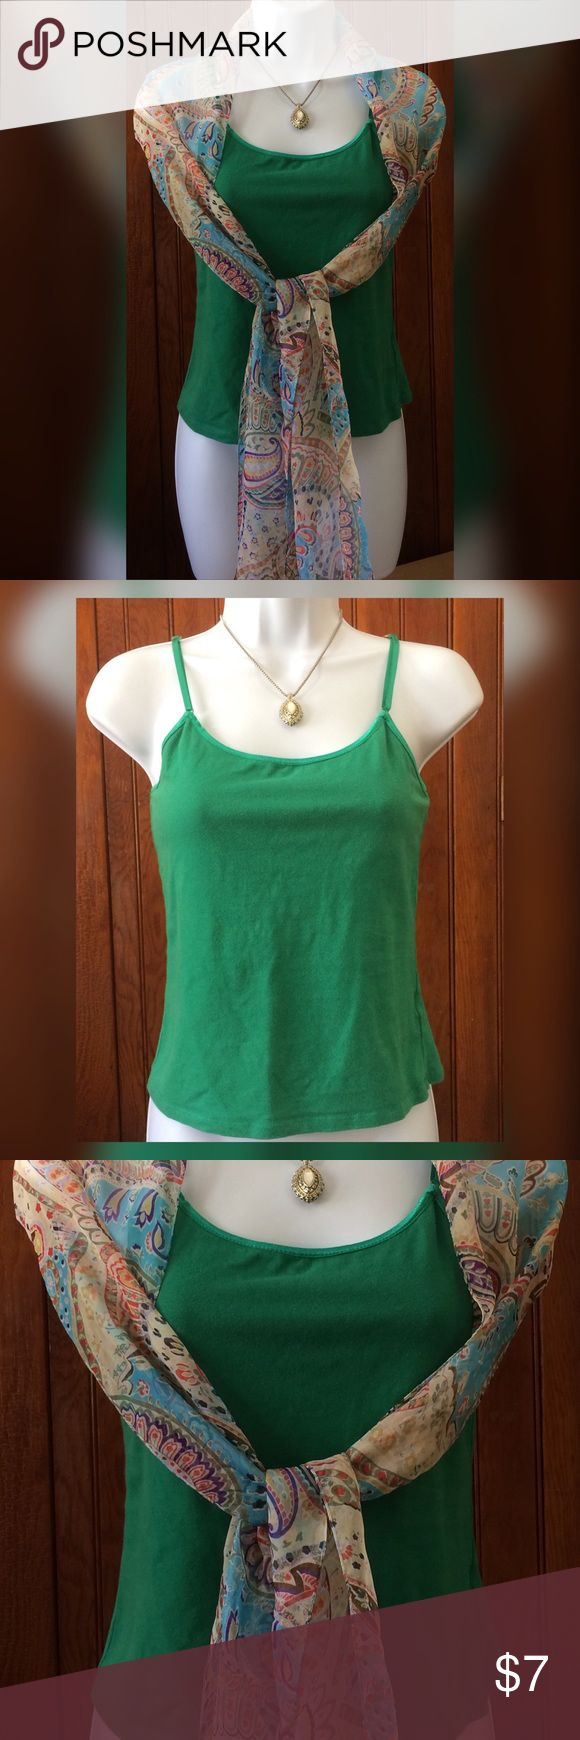 Ladies Green Tank Top Ladies green tank top with adjustable straps. Lined. Pre loved but in great shape. Bundle with other items & save on shipping! Tops Tank Tops